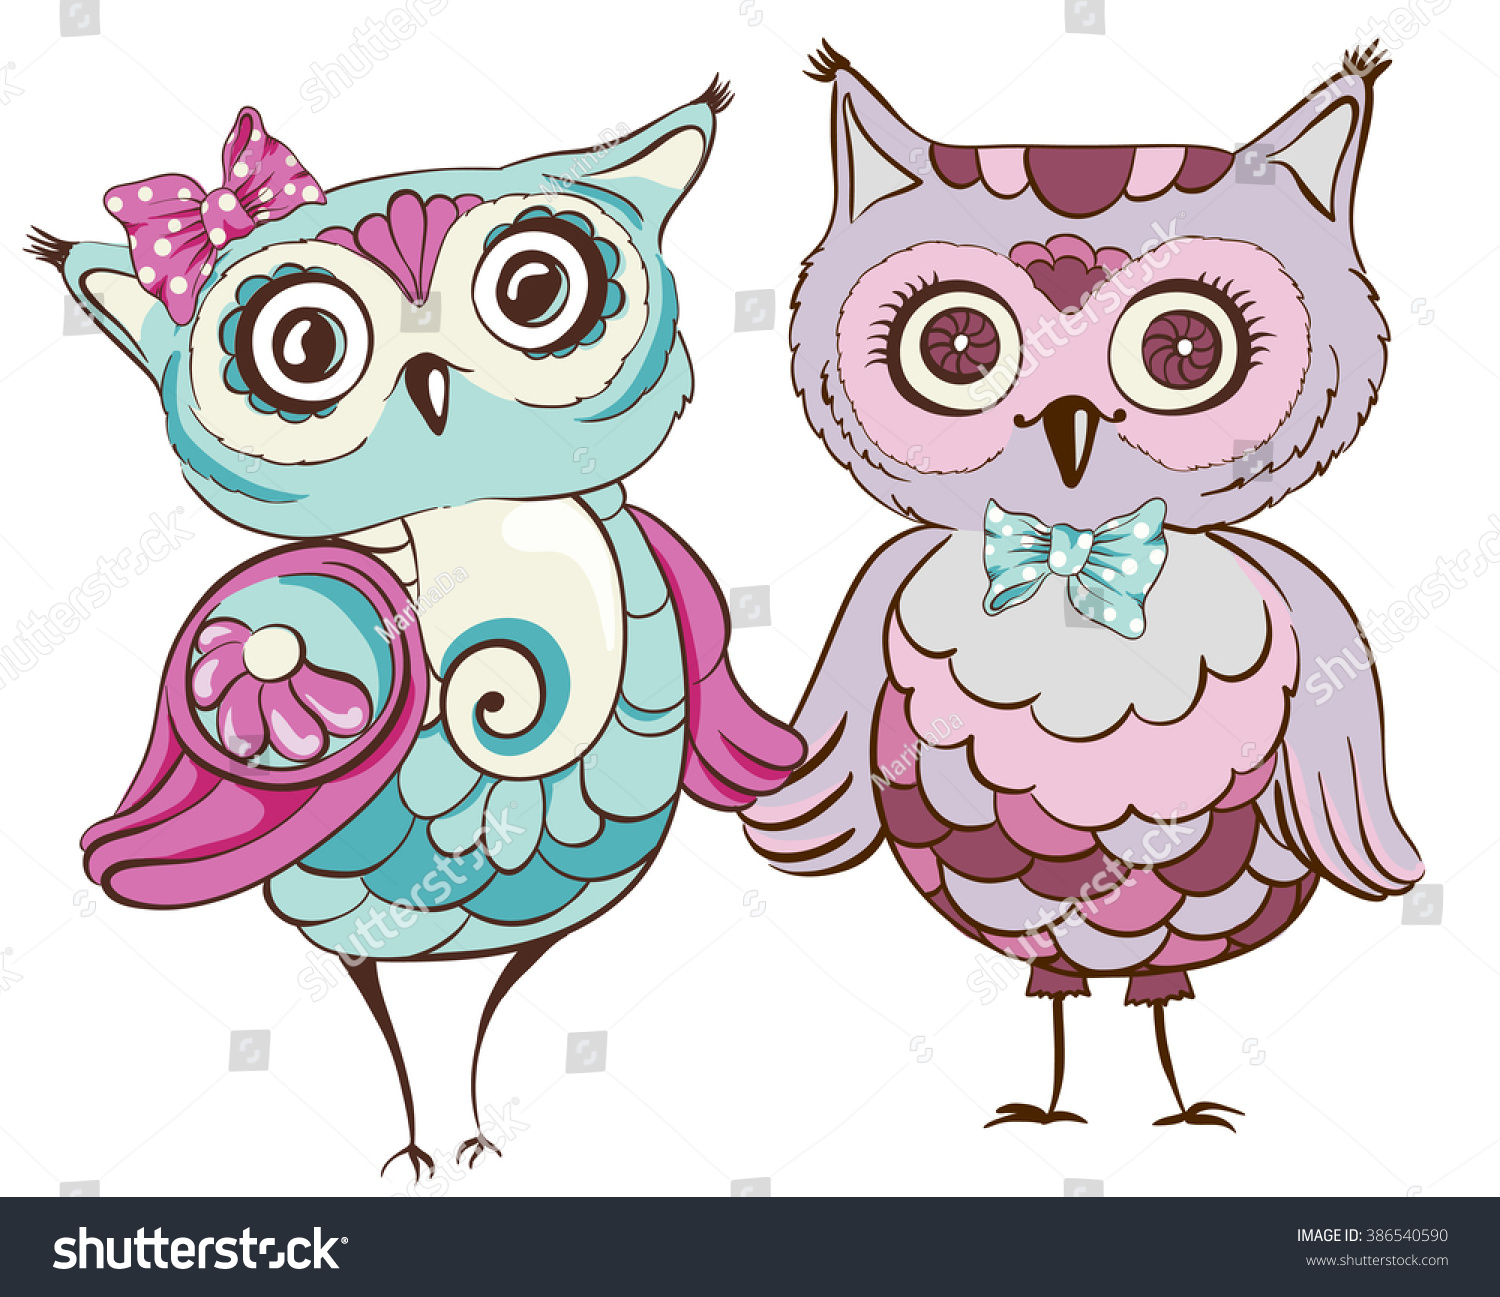 Love birds Greeting card with cute owls couple Vector hand drawn illustration